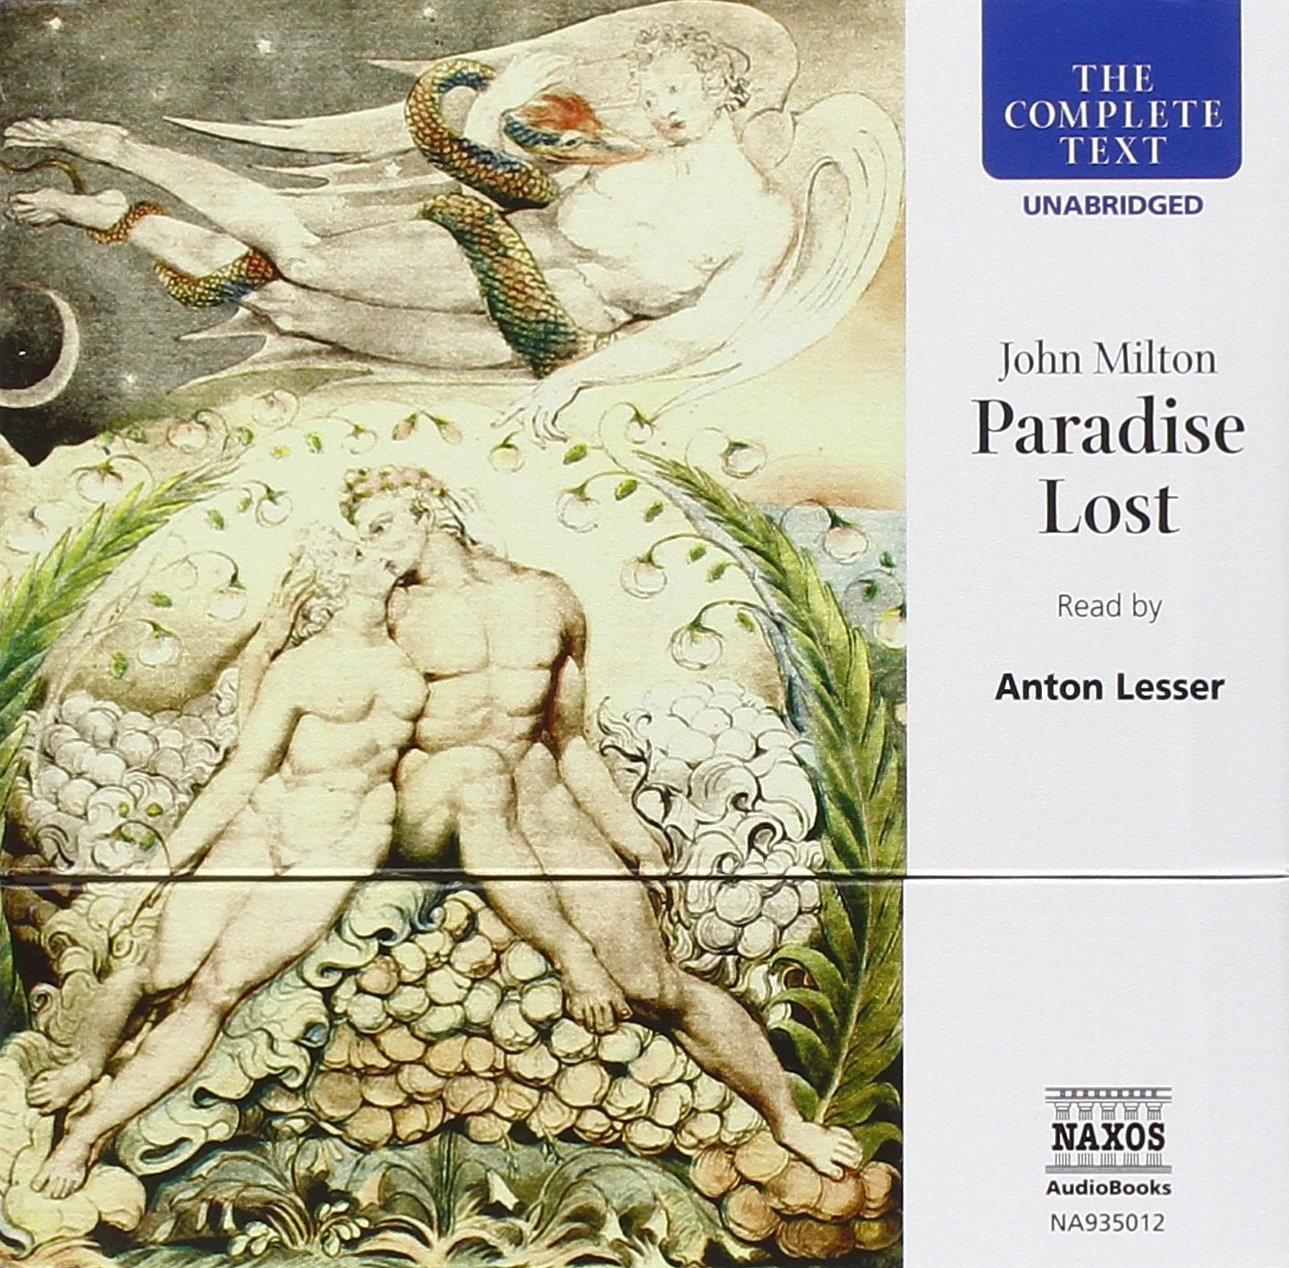 the issue of blame for the fall of man in john miltons poem paradise lost Paradise lost is an epic poem in blank verse by the 17th story of the fall of man: penguin edition of paradise lost, the milton scholar john.